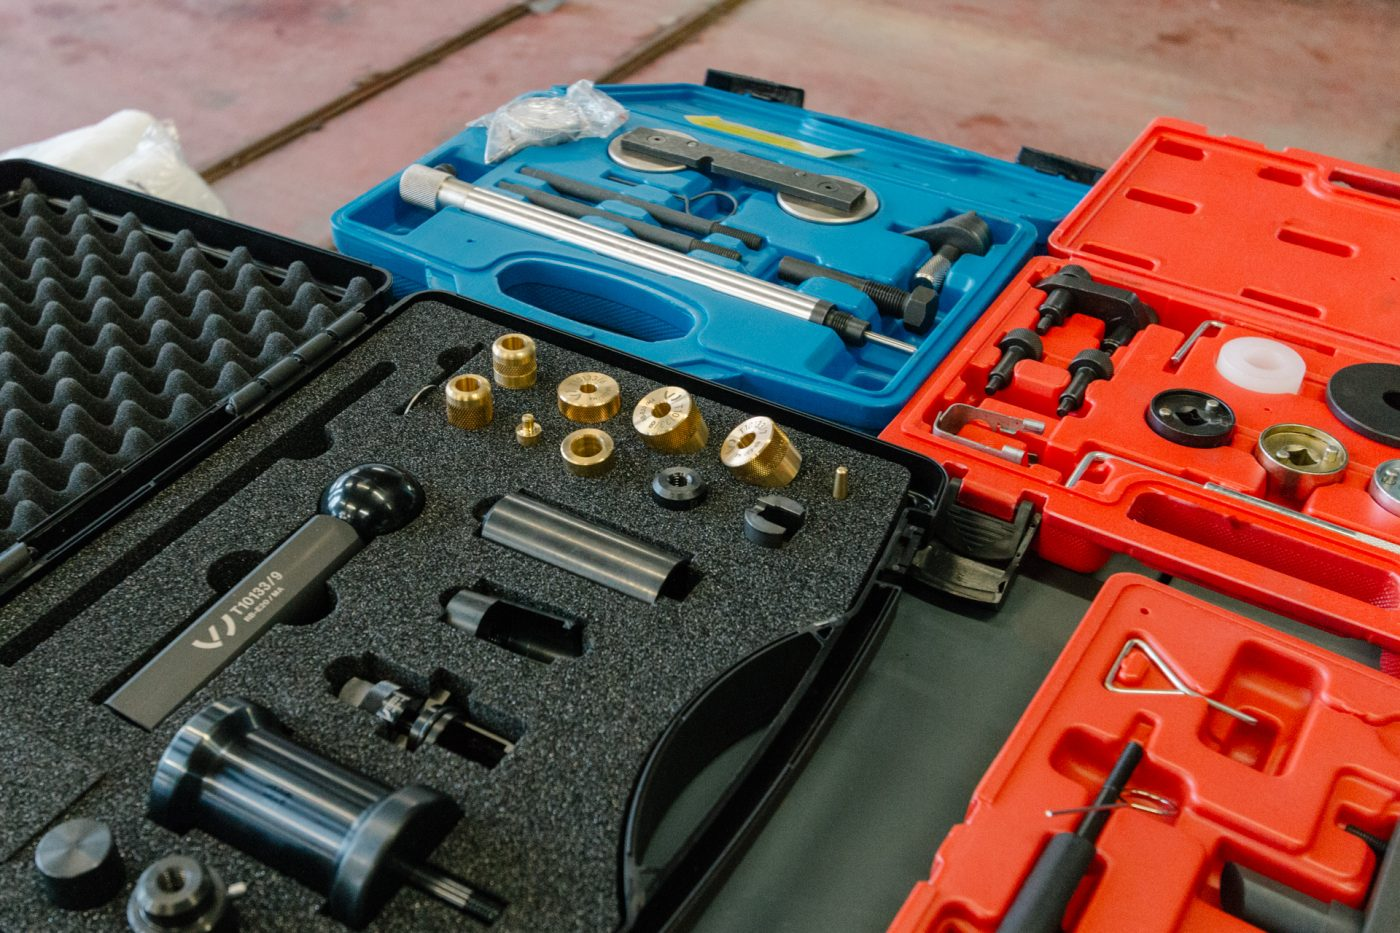 Diesel injector removal tools